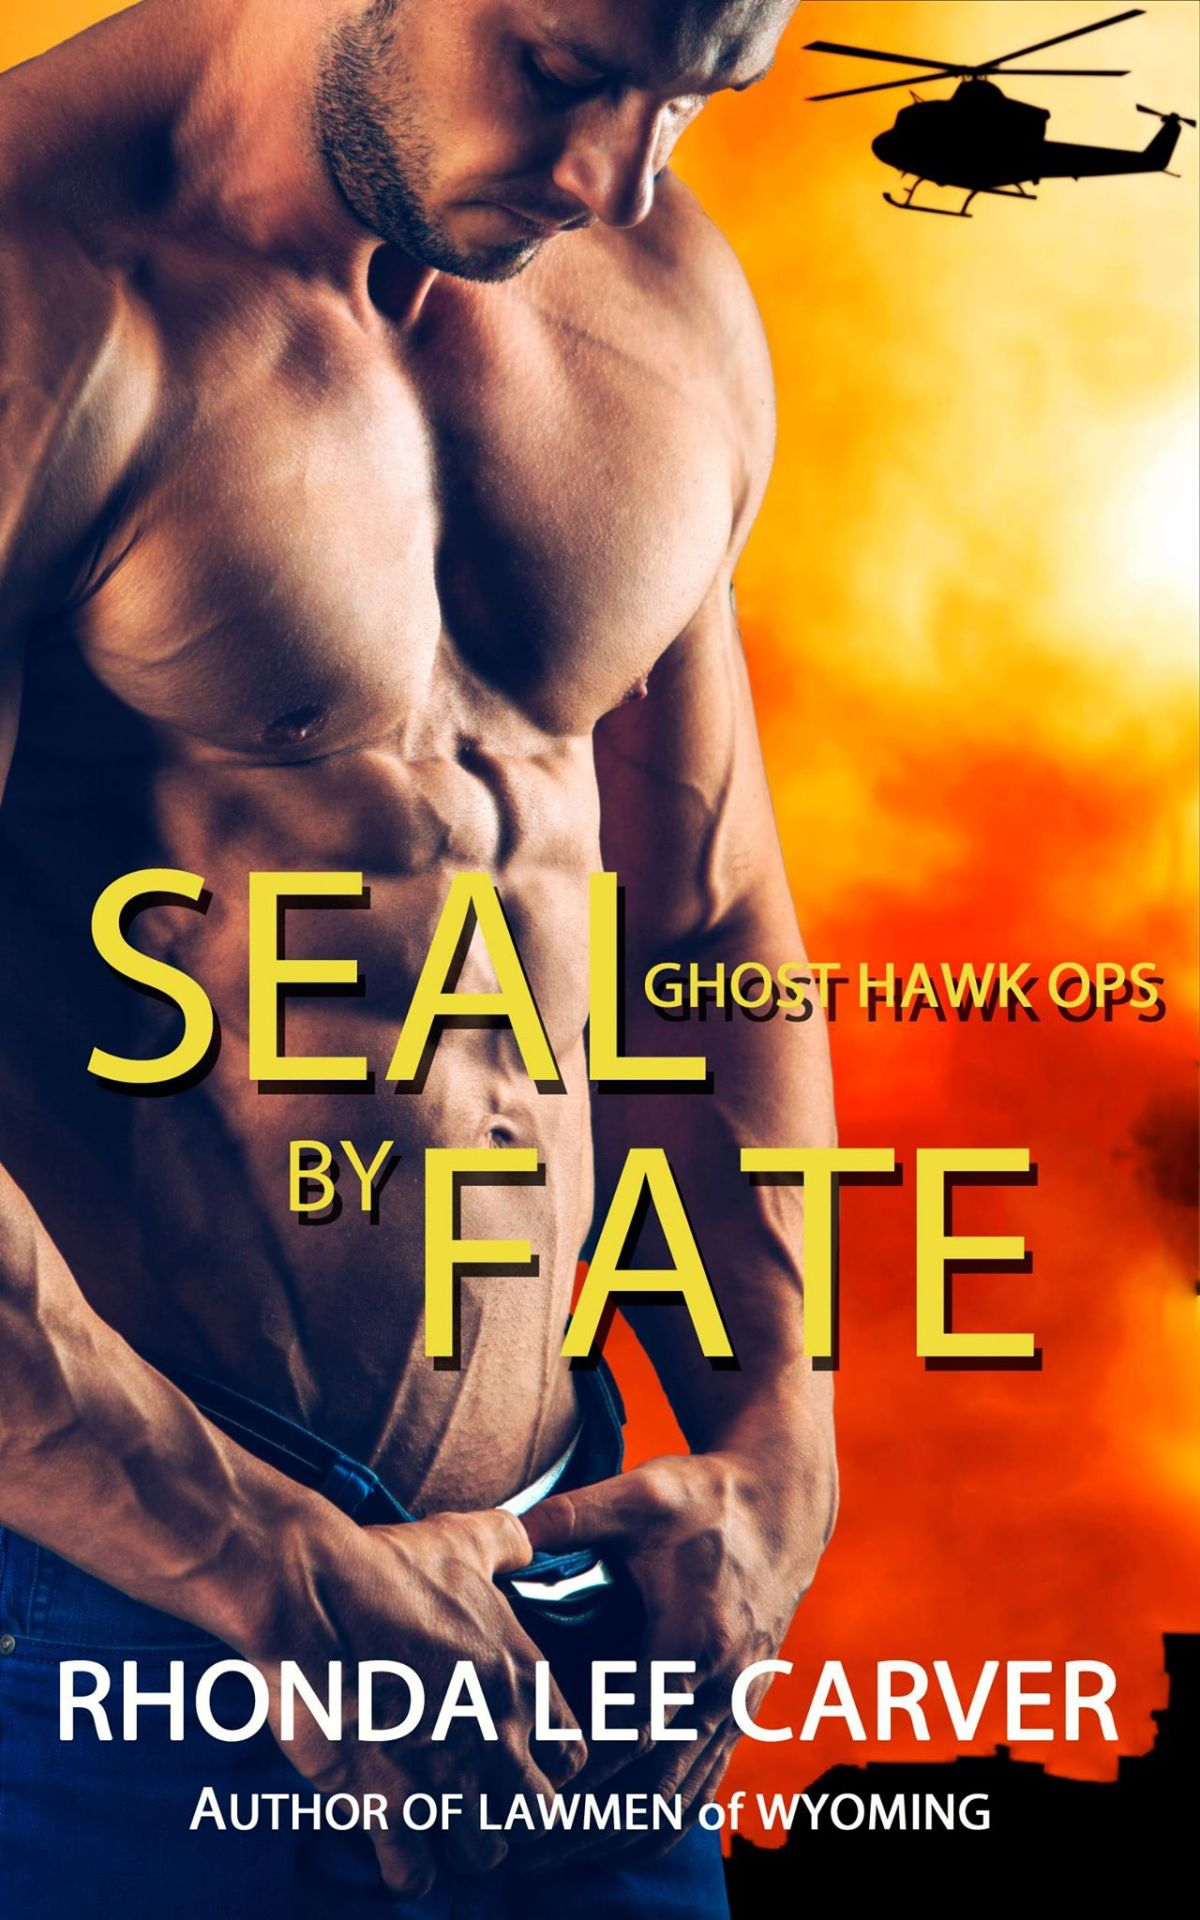 NEW RELEASE: SEAL BY FATE BY RHONDA LEE CARVER